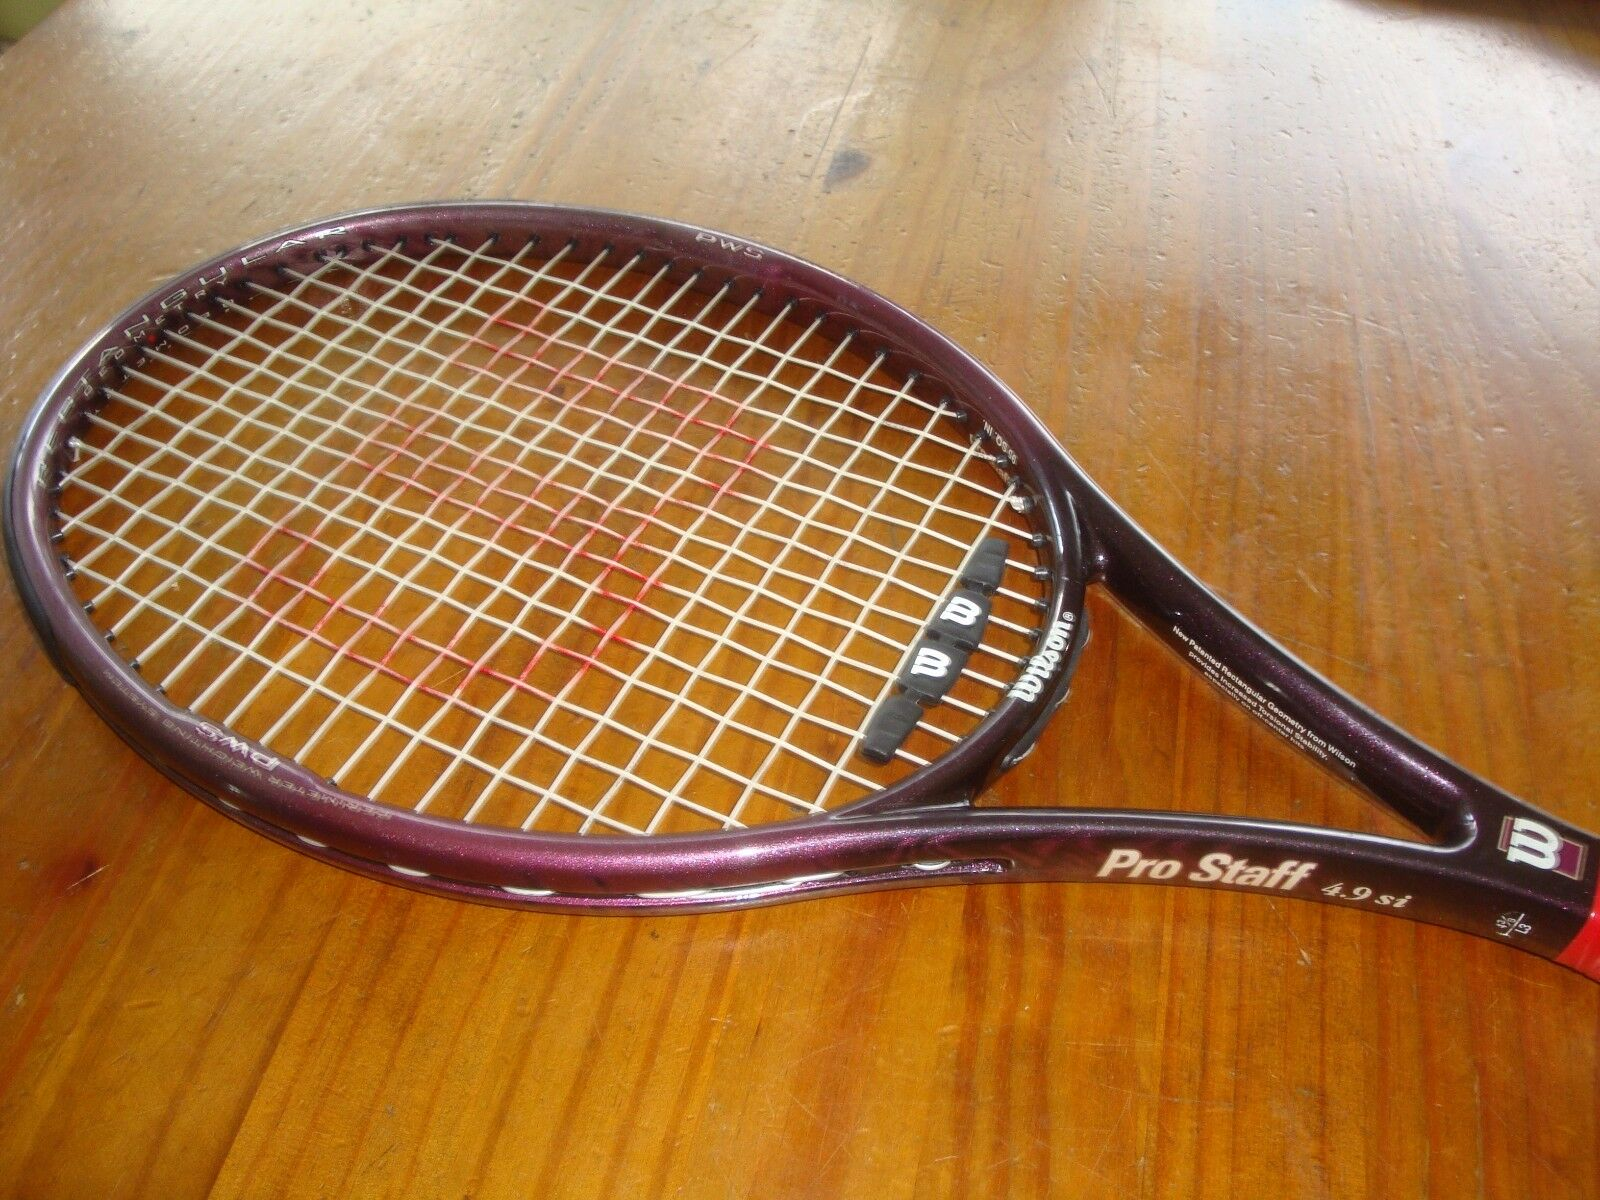 Wilson Pro Staff 4.9 si  PWS 95 sq in Tennis Racquet 4 3 8   EXCELLENT